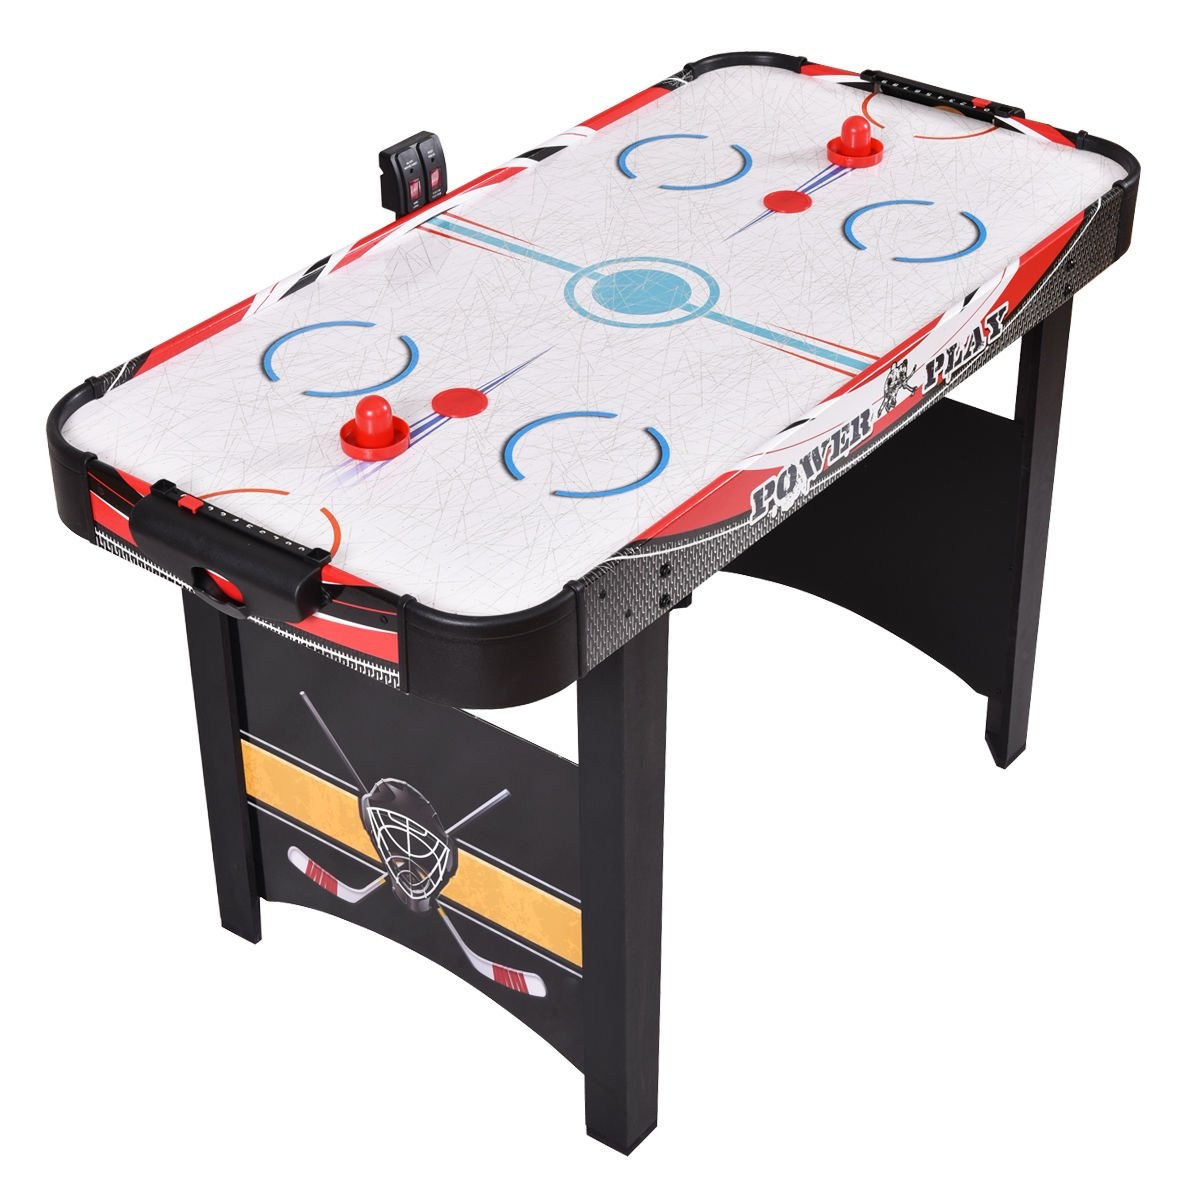 Goplus 48'' Air Powered Hockey Table Indoor Sports Game Electronic Scoring Red Puck for Kids